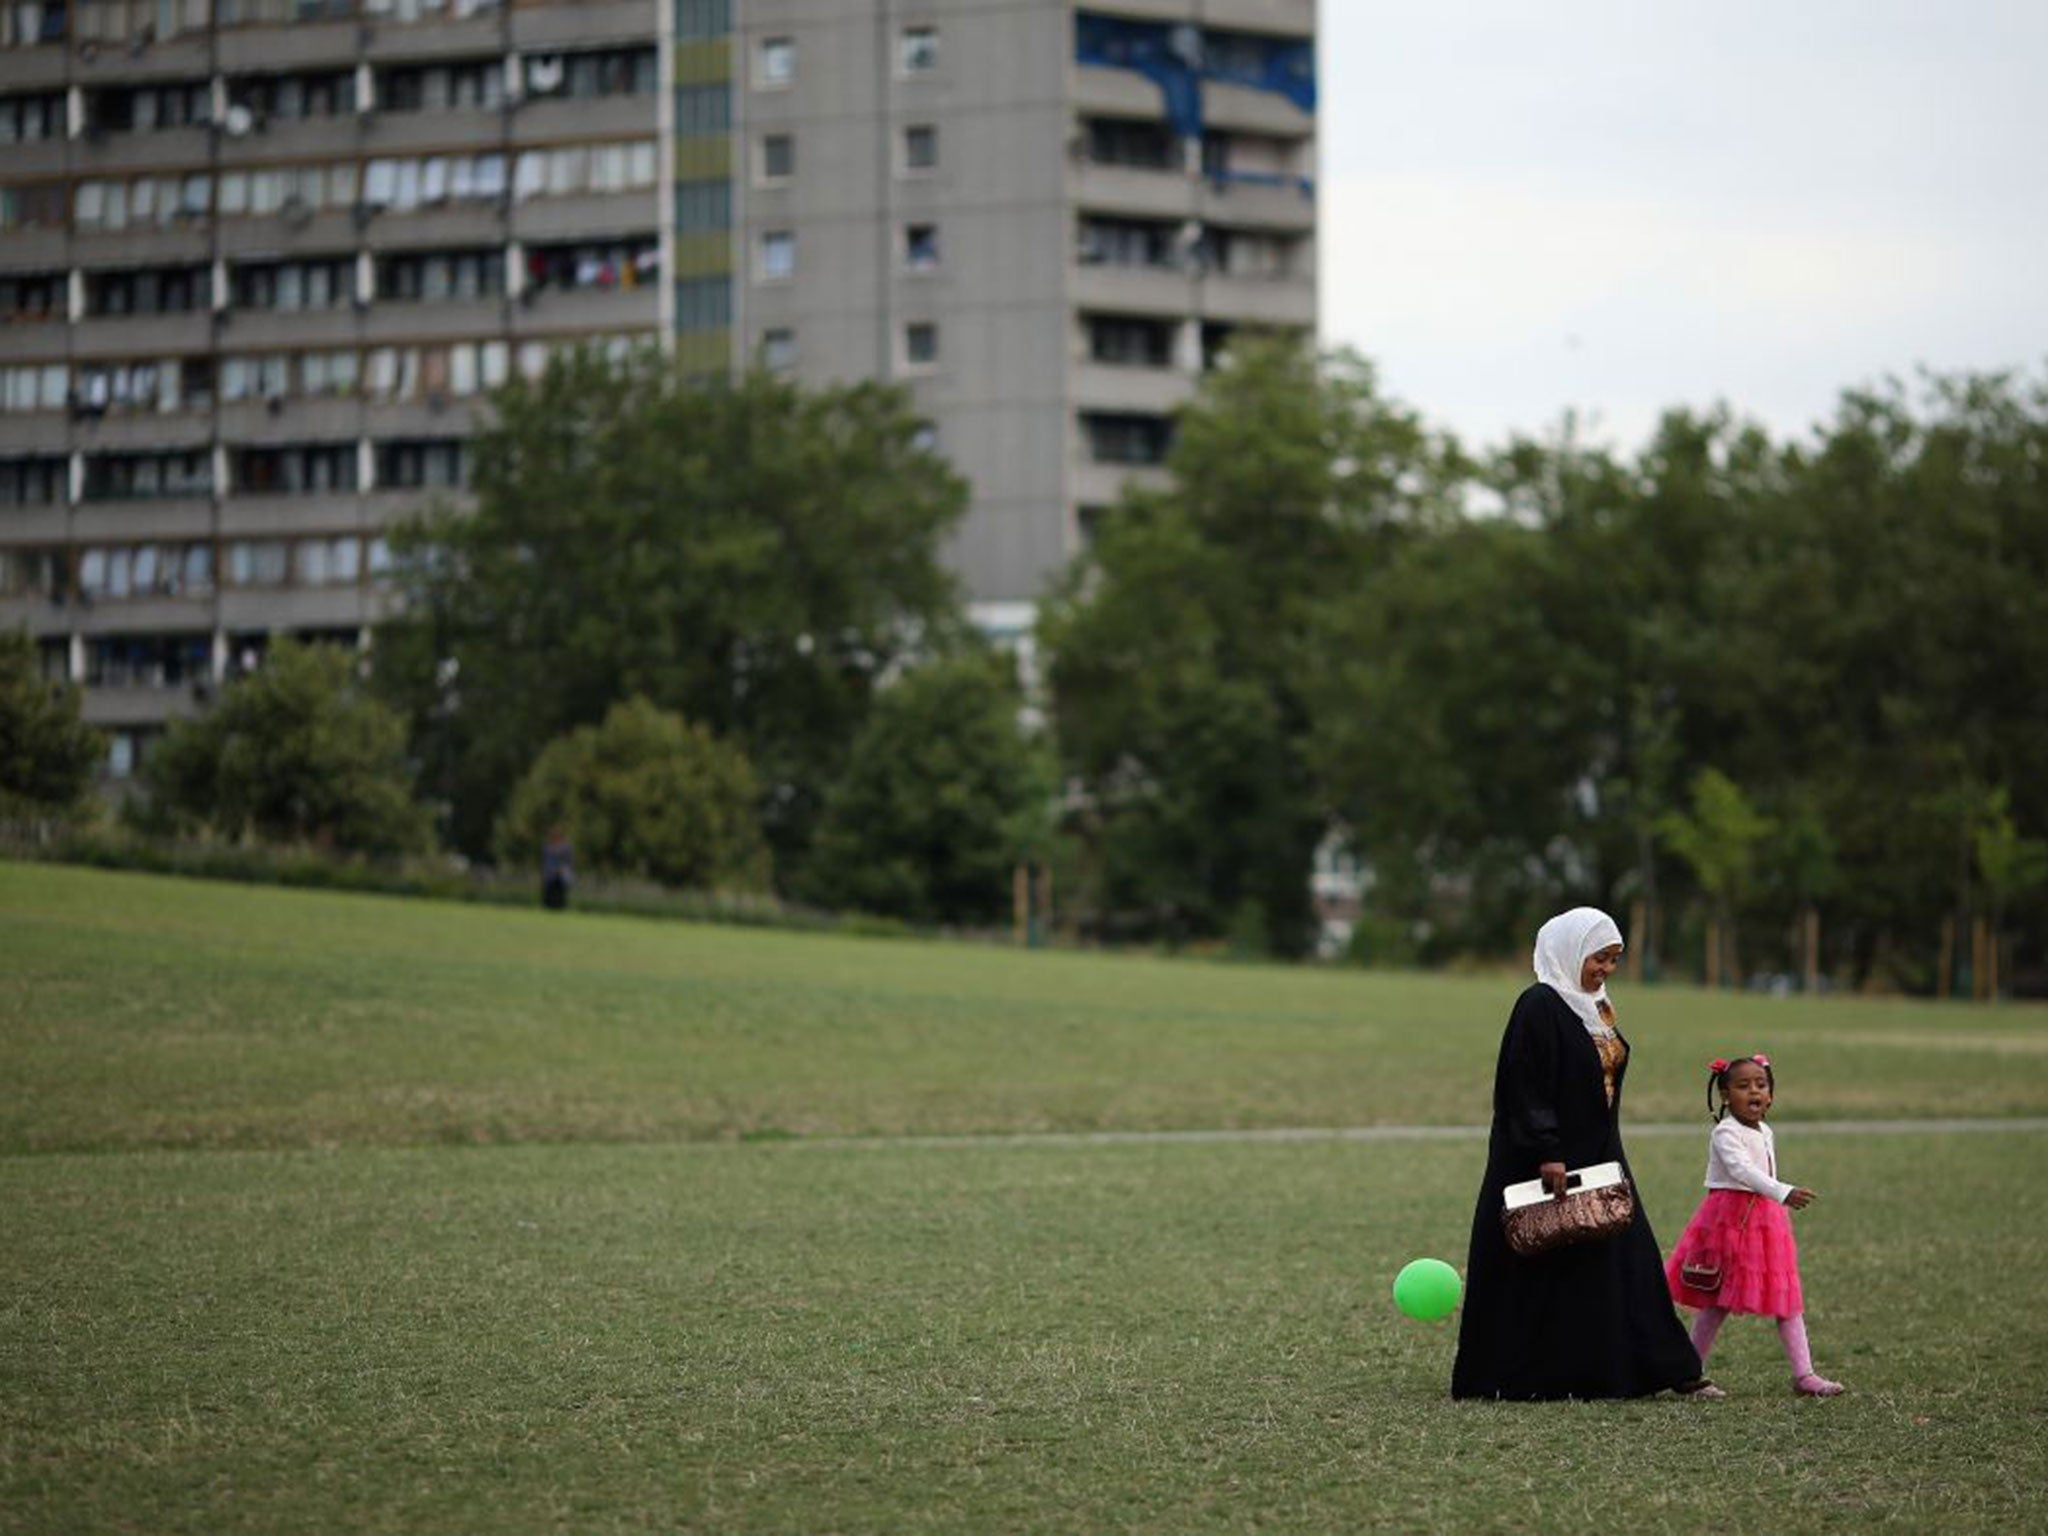 British Muslims face worst job discrimination of any minority group, according to research